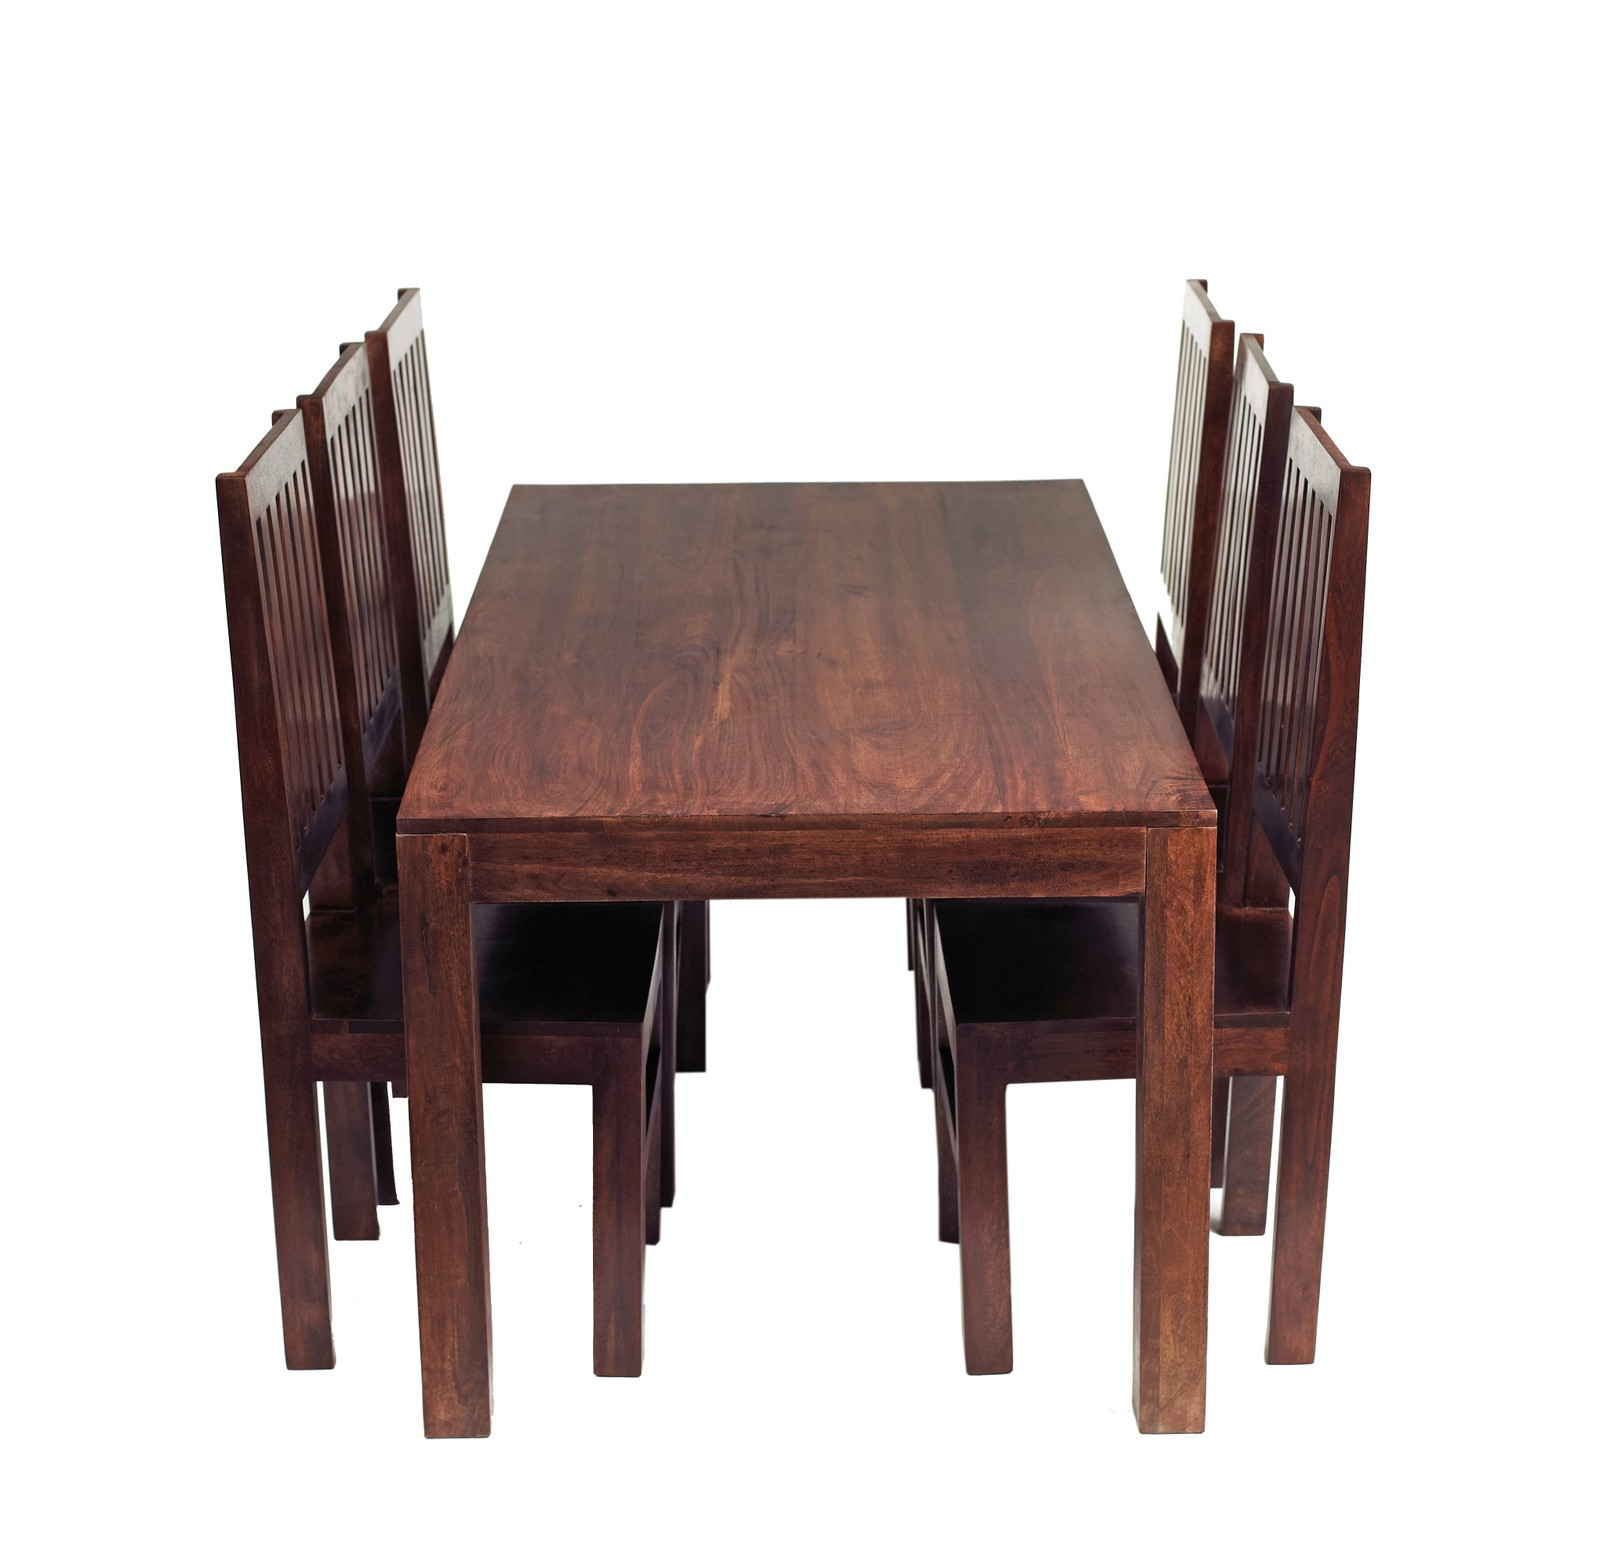 Dakota Mango 6 Ft Dining Set With Wooden Chairs Verty